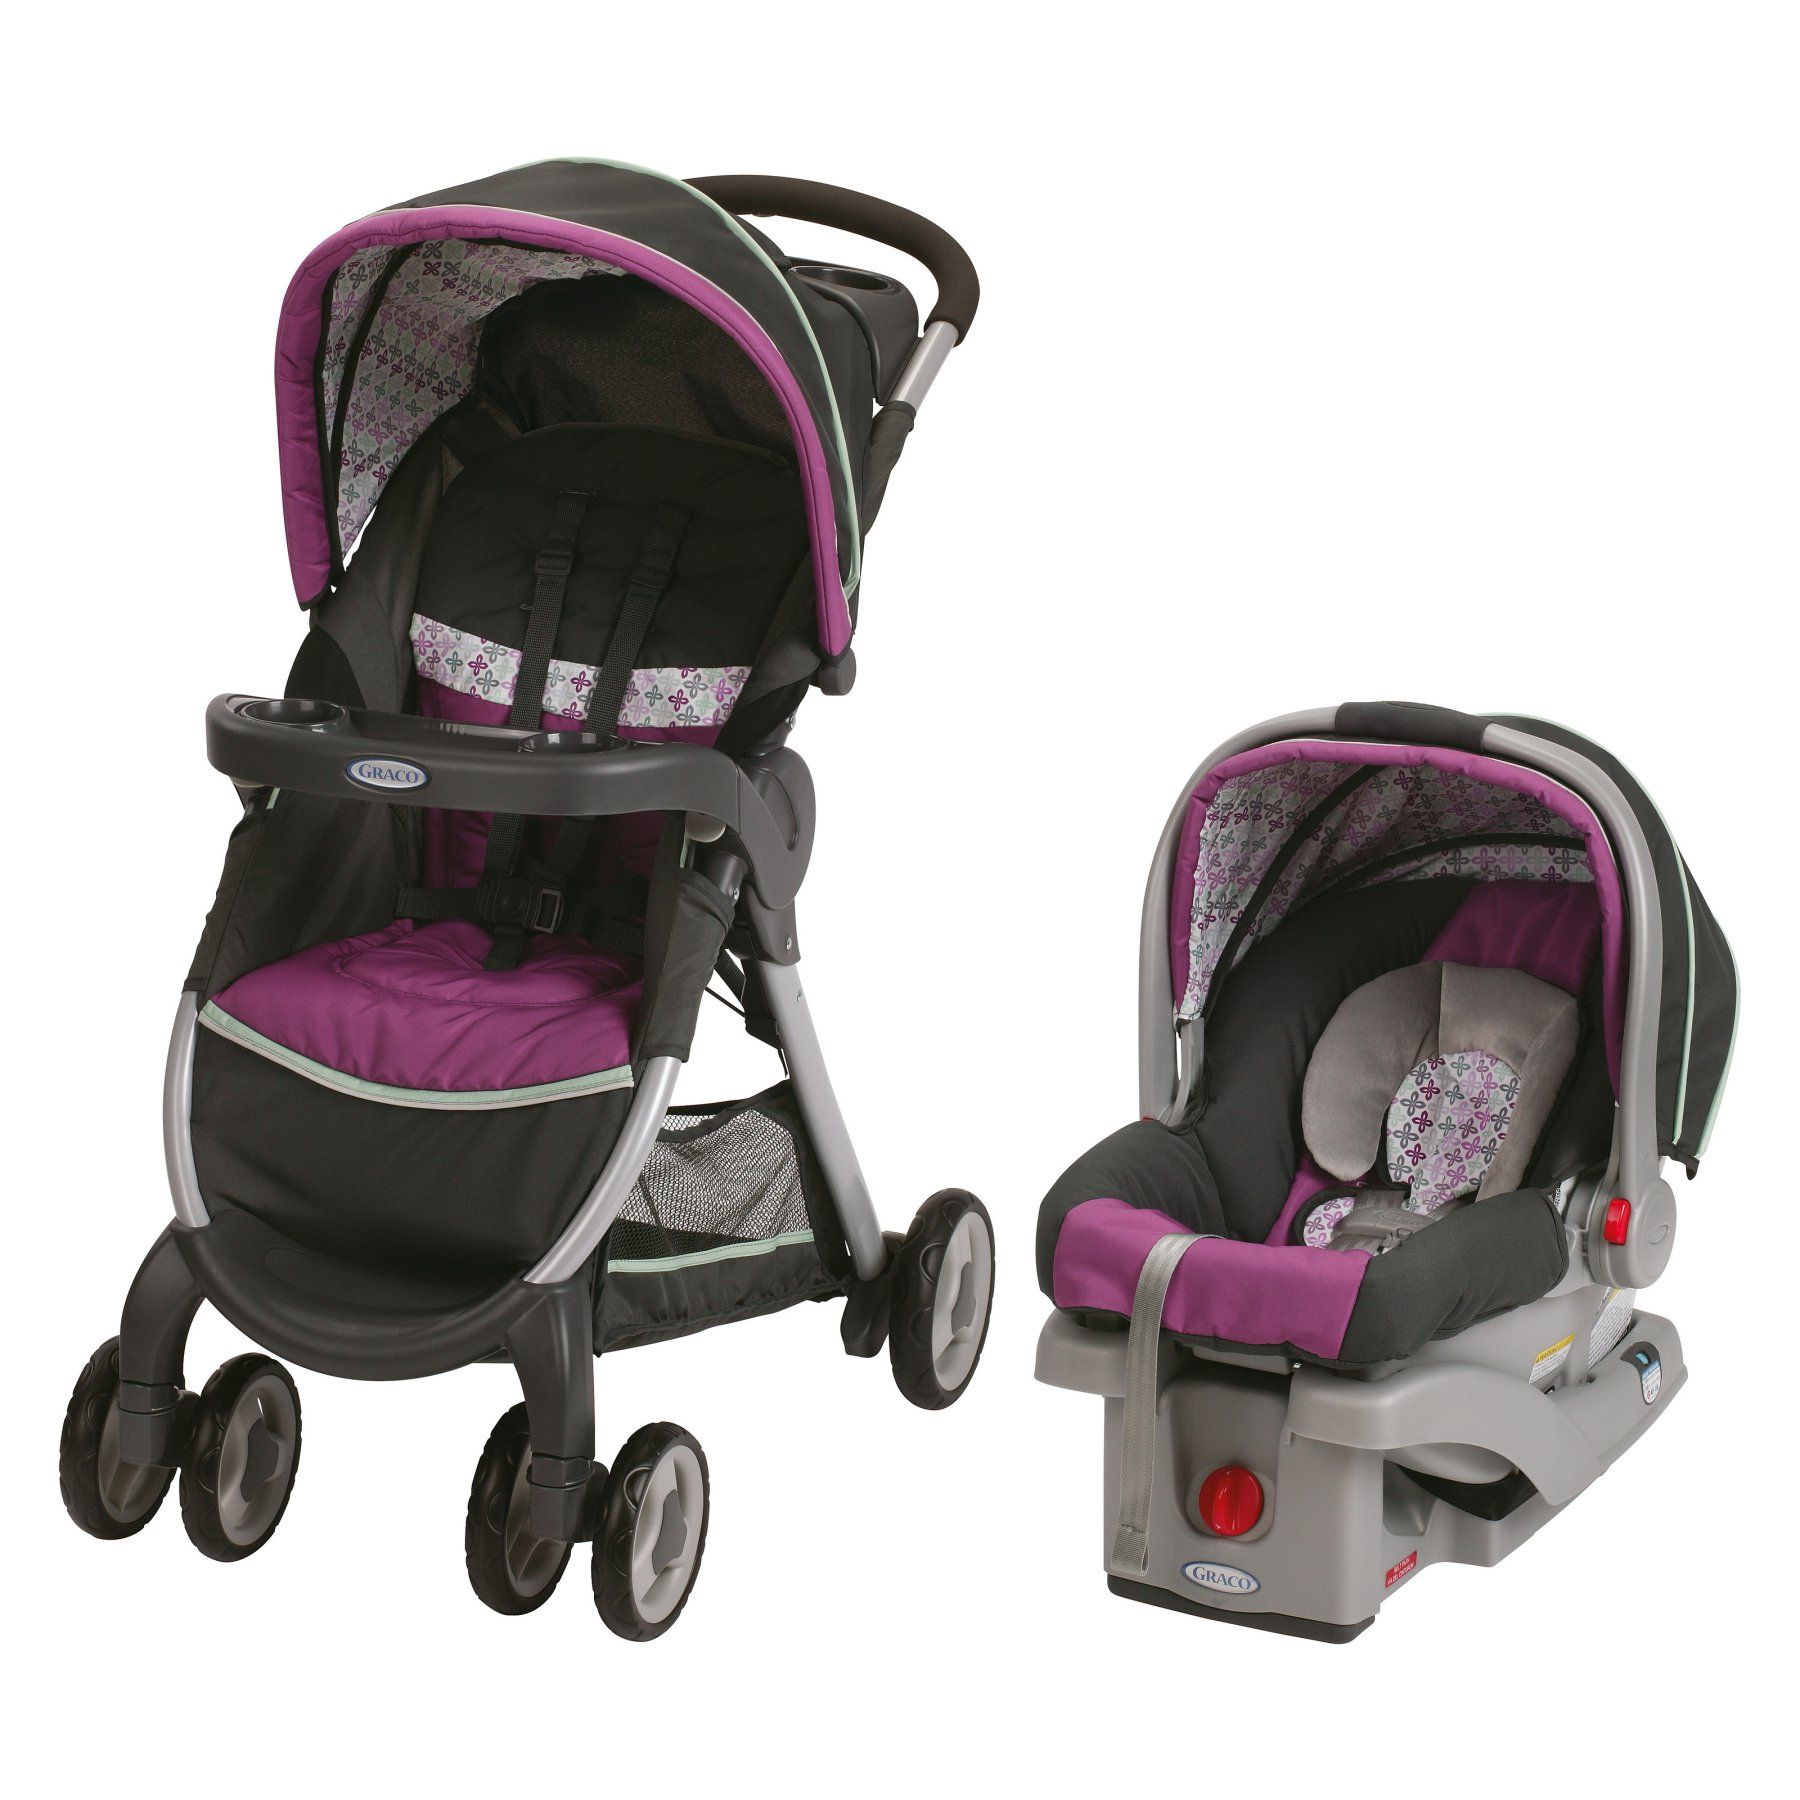 Graco Fast Action 2.0 Snugride Click Connect 35 LX Travel